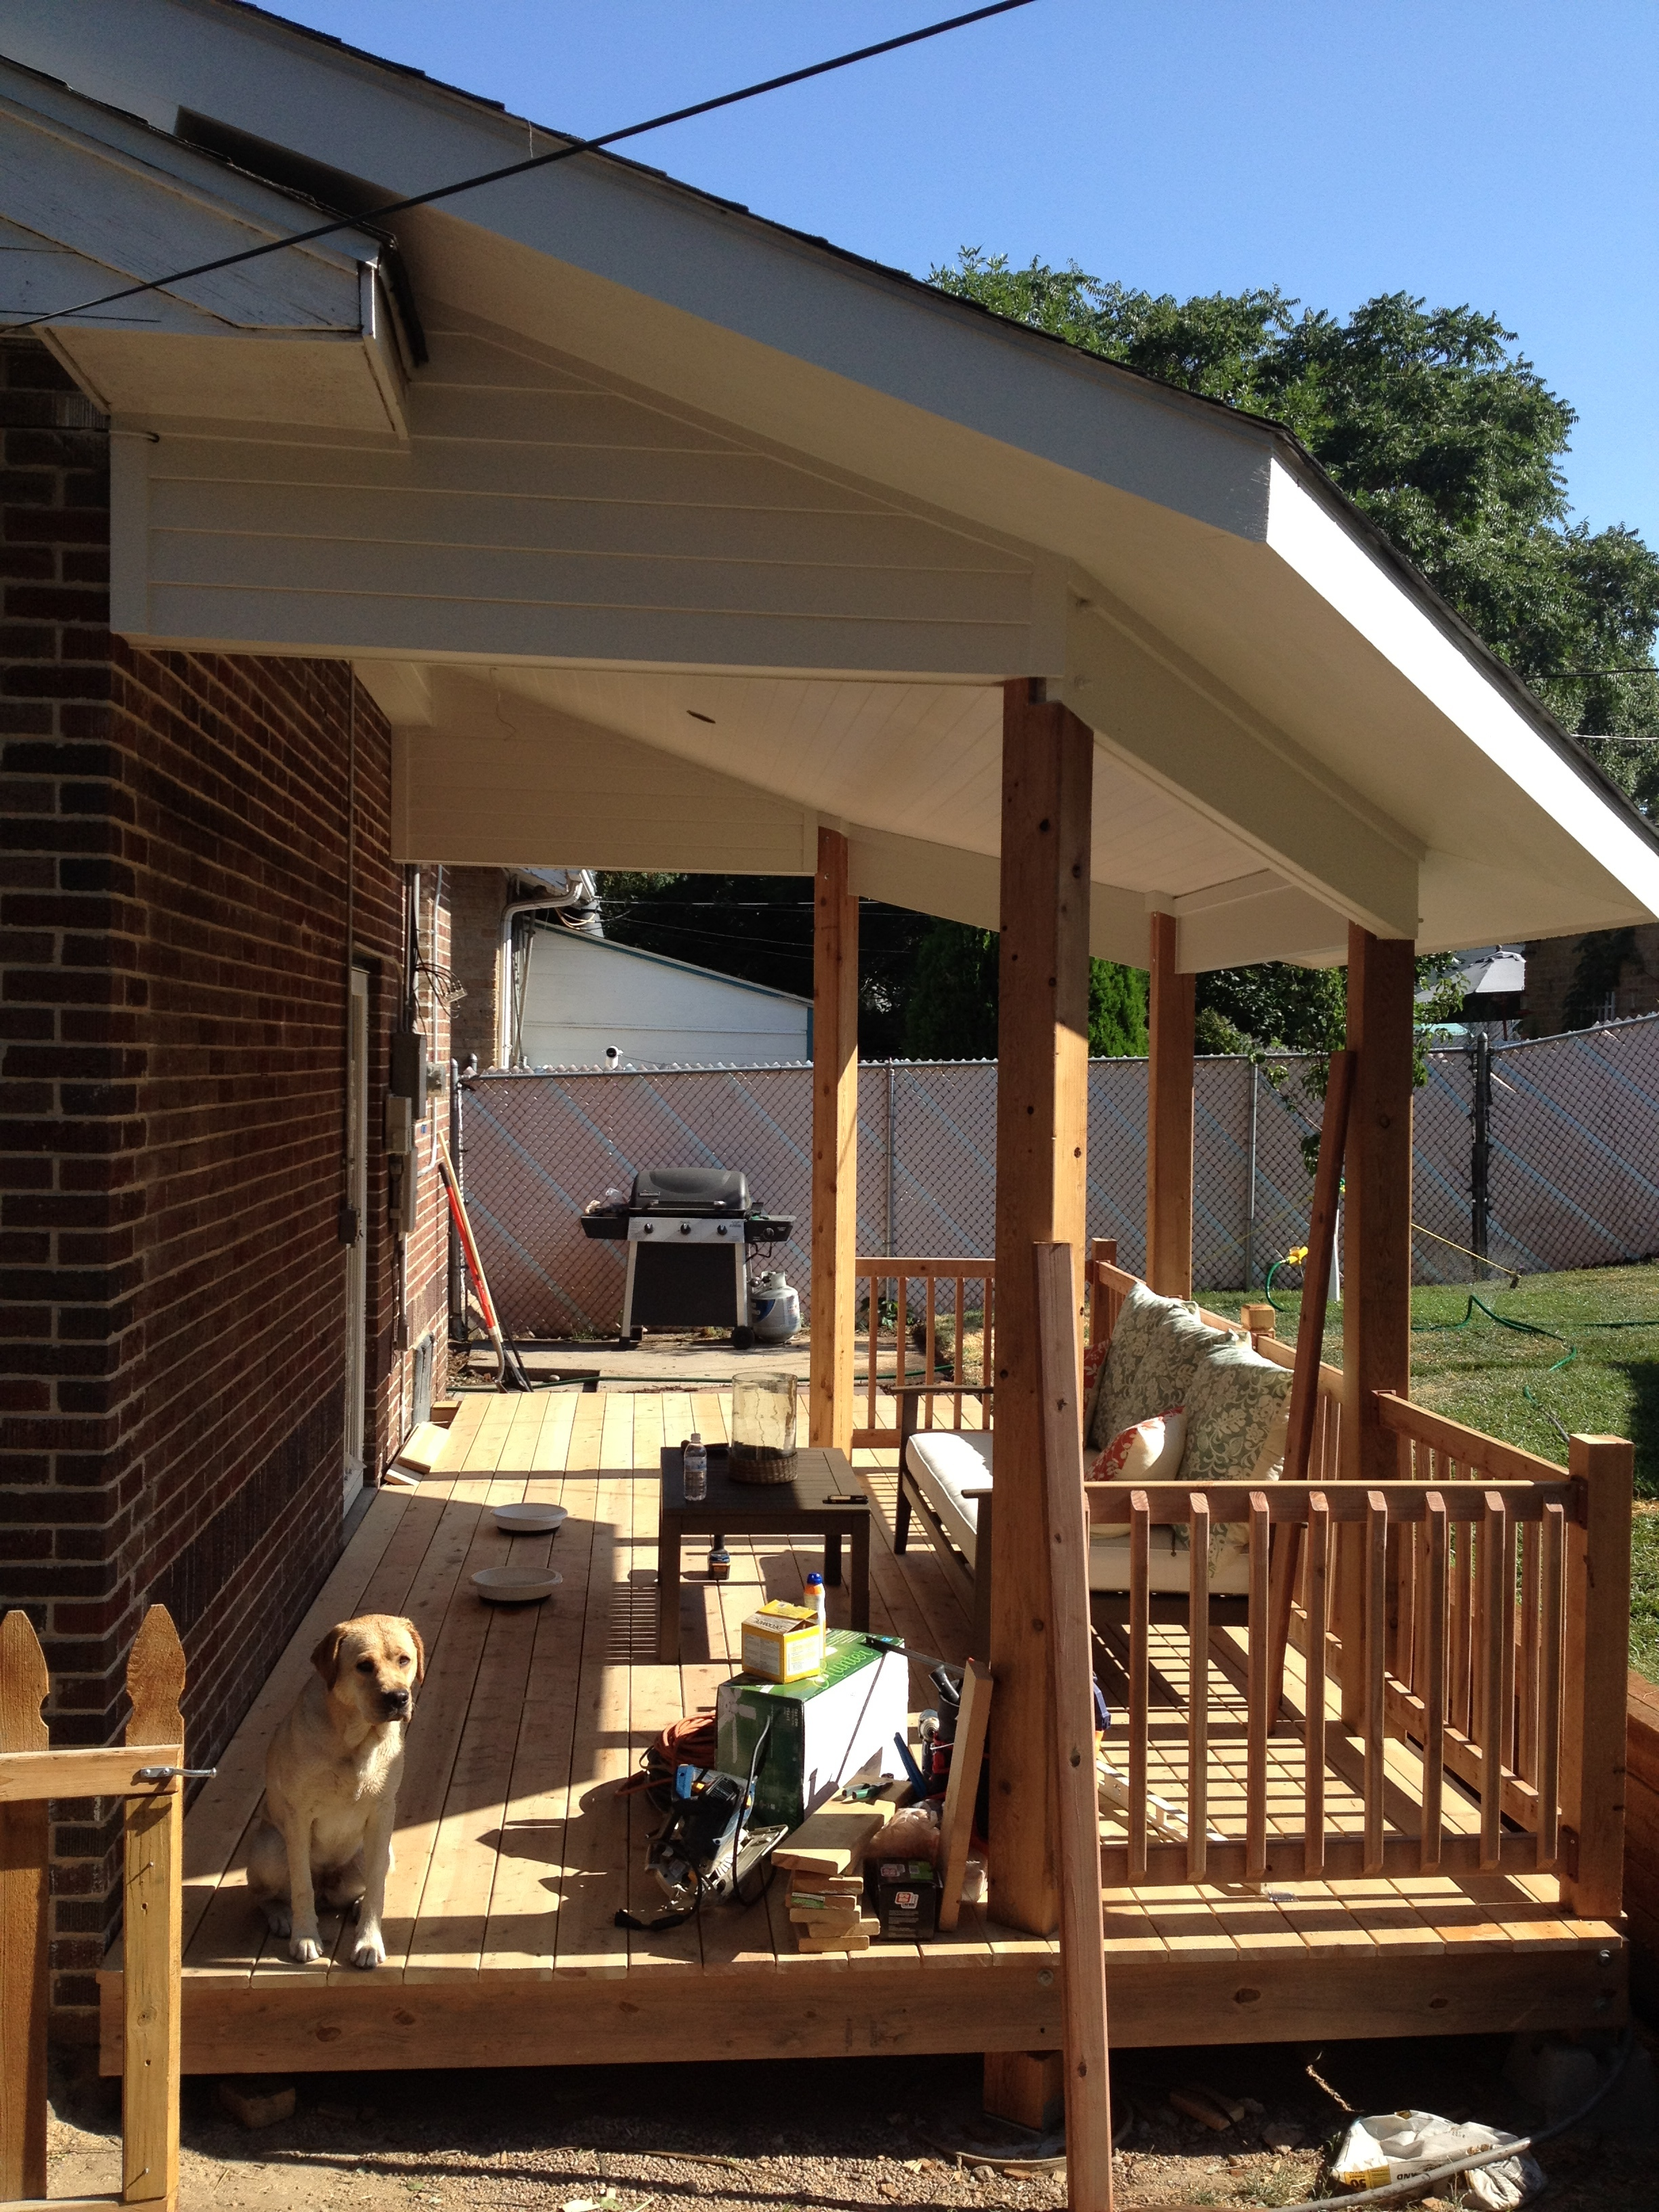 The deck is in the middle of being built by my husband.